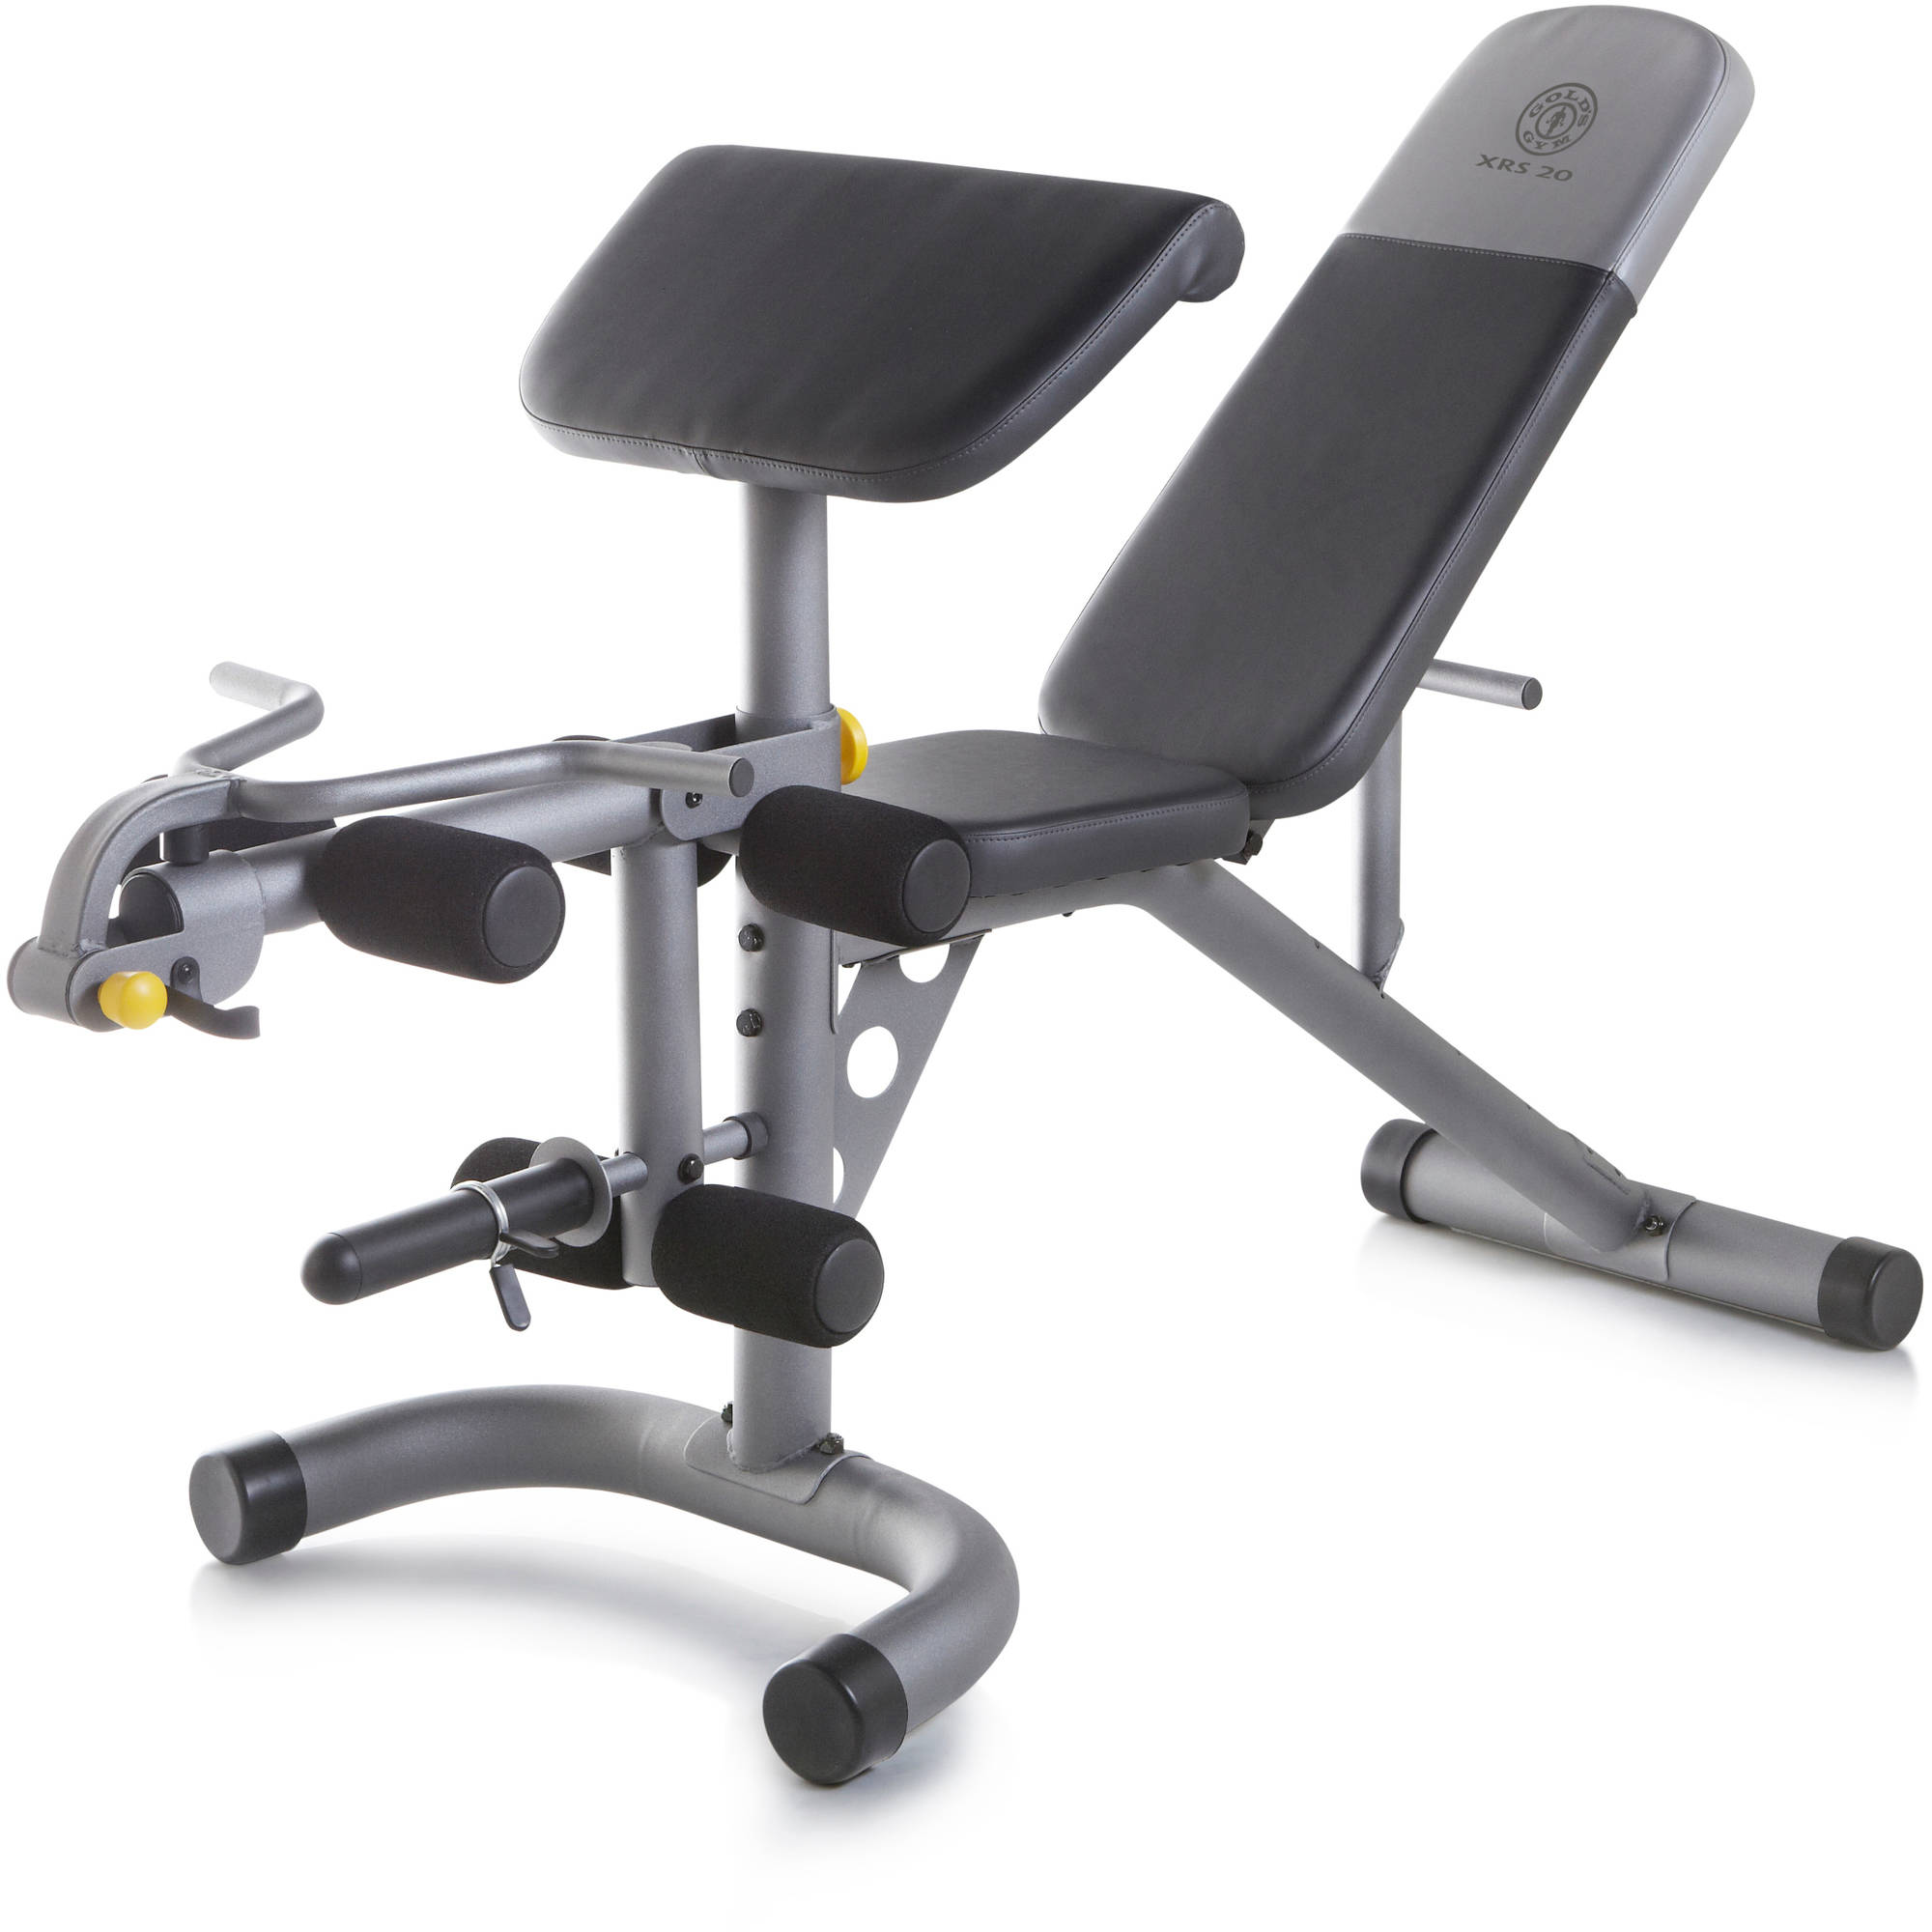 Home Gym System Equipment Fitness Workout Bench Exercise Adjustable Leg Machine Ebay